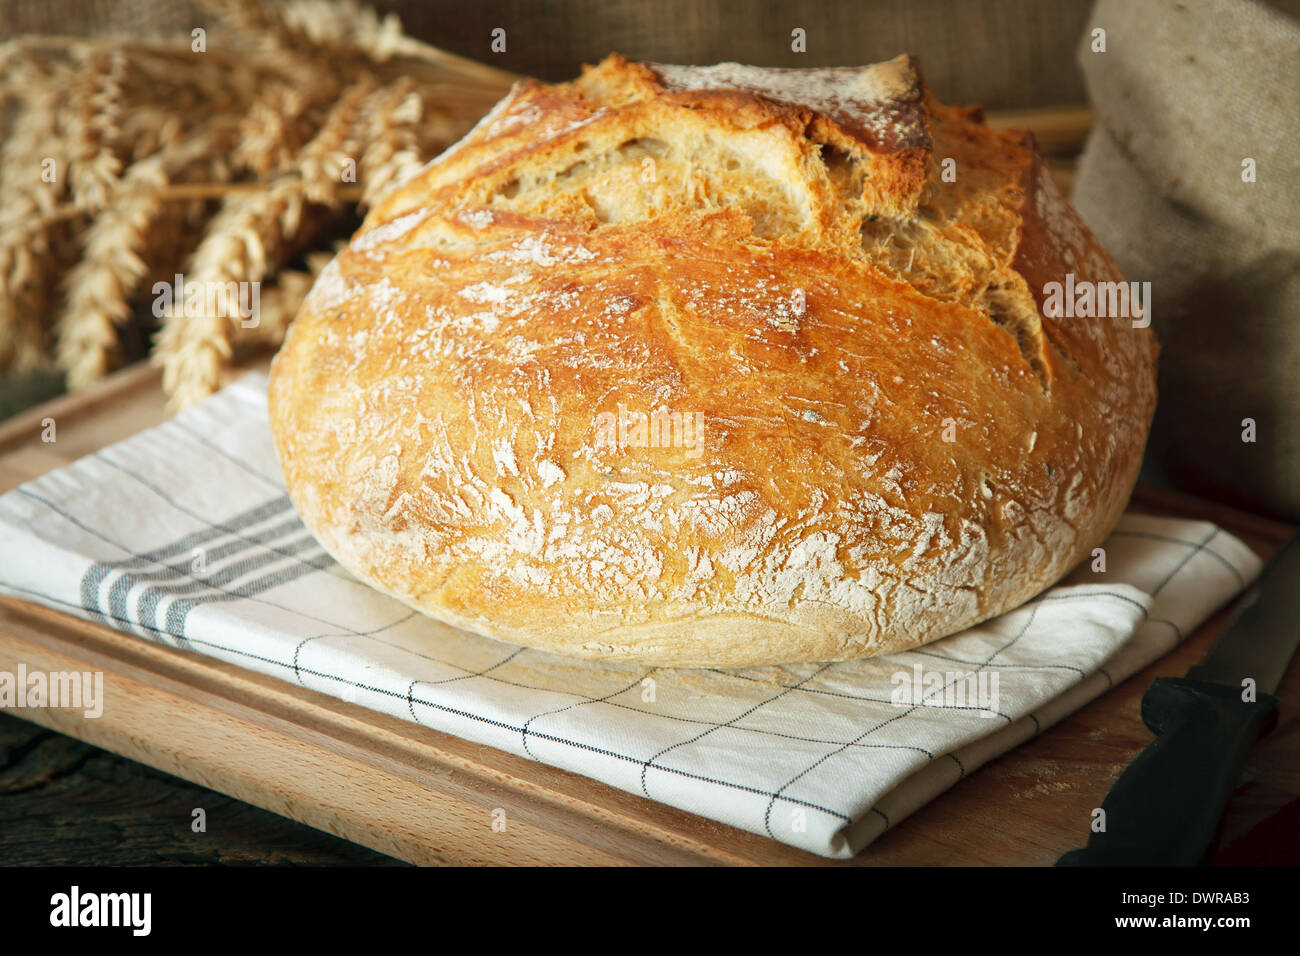 Home made bread on wooden table - Stock Image